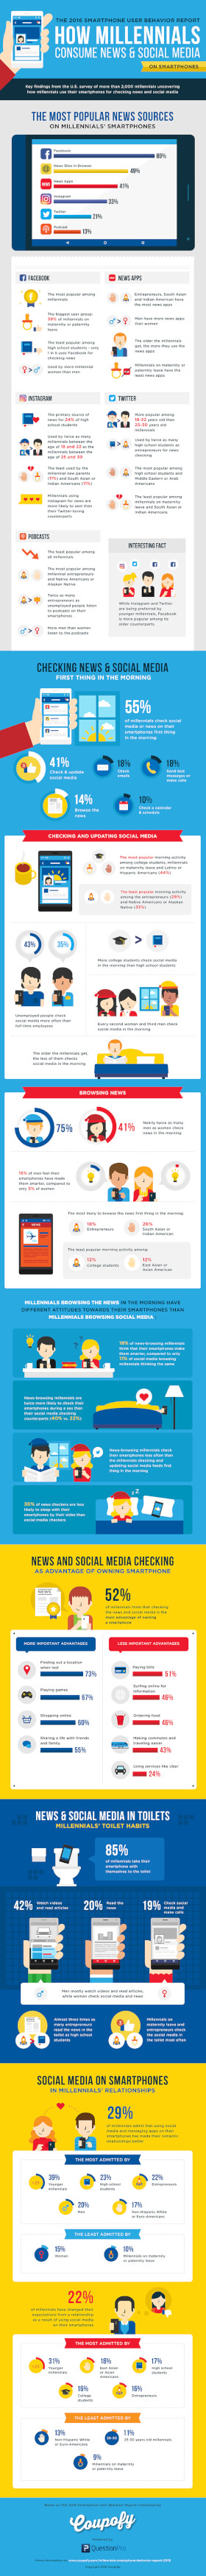 How Millennials Digest Social Media and News on Smartphone